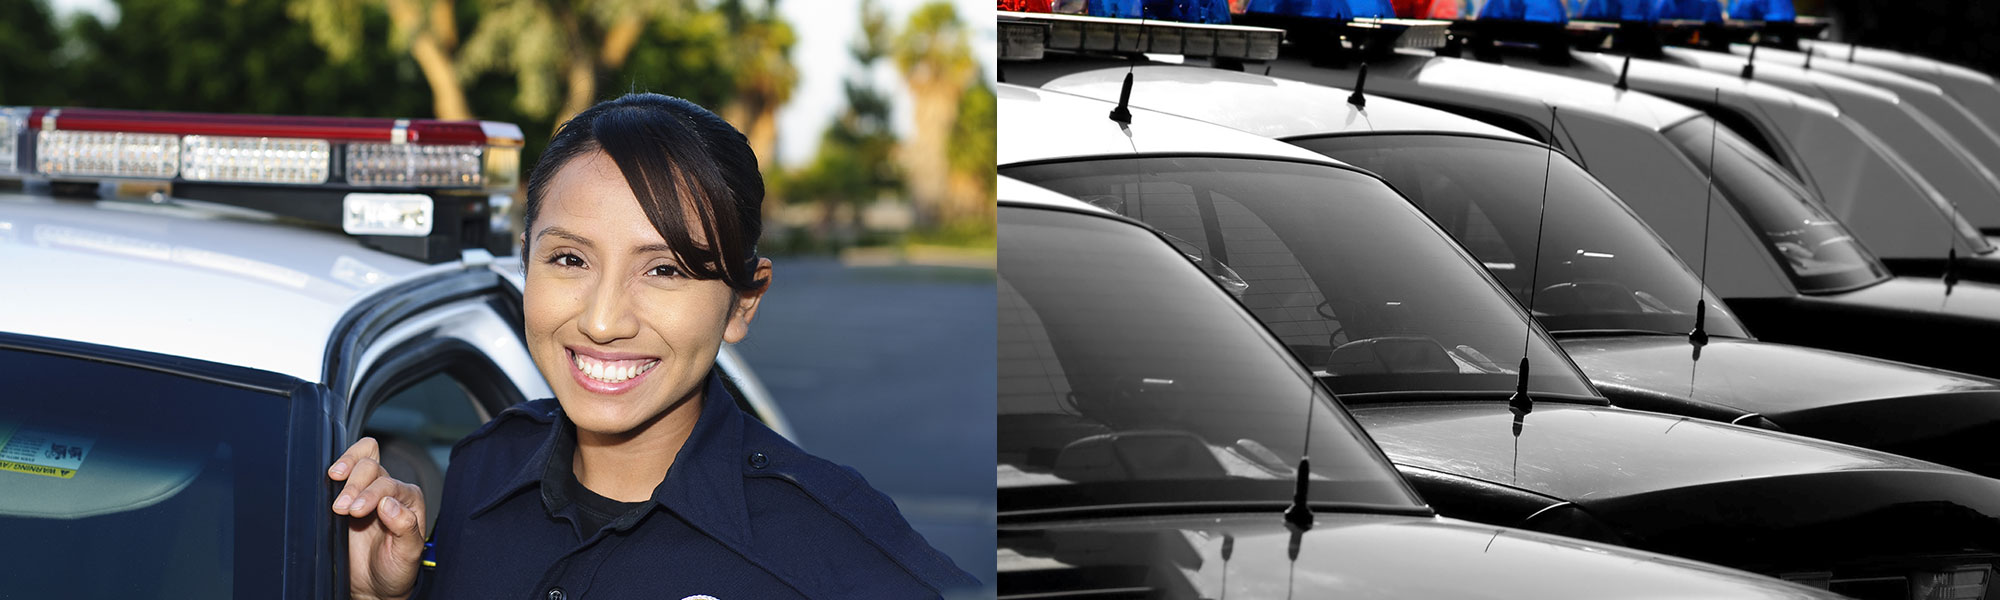 Female police officer and police cars - New for 2021- 2022